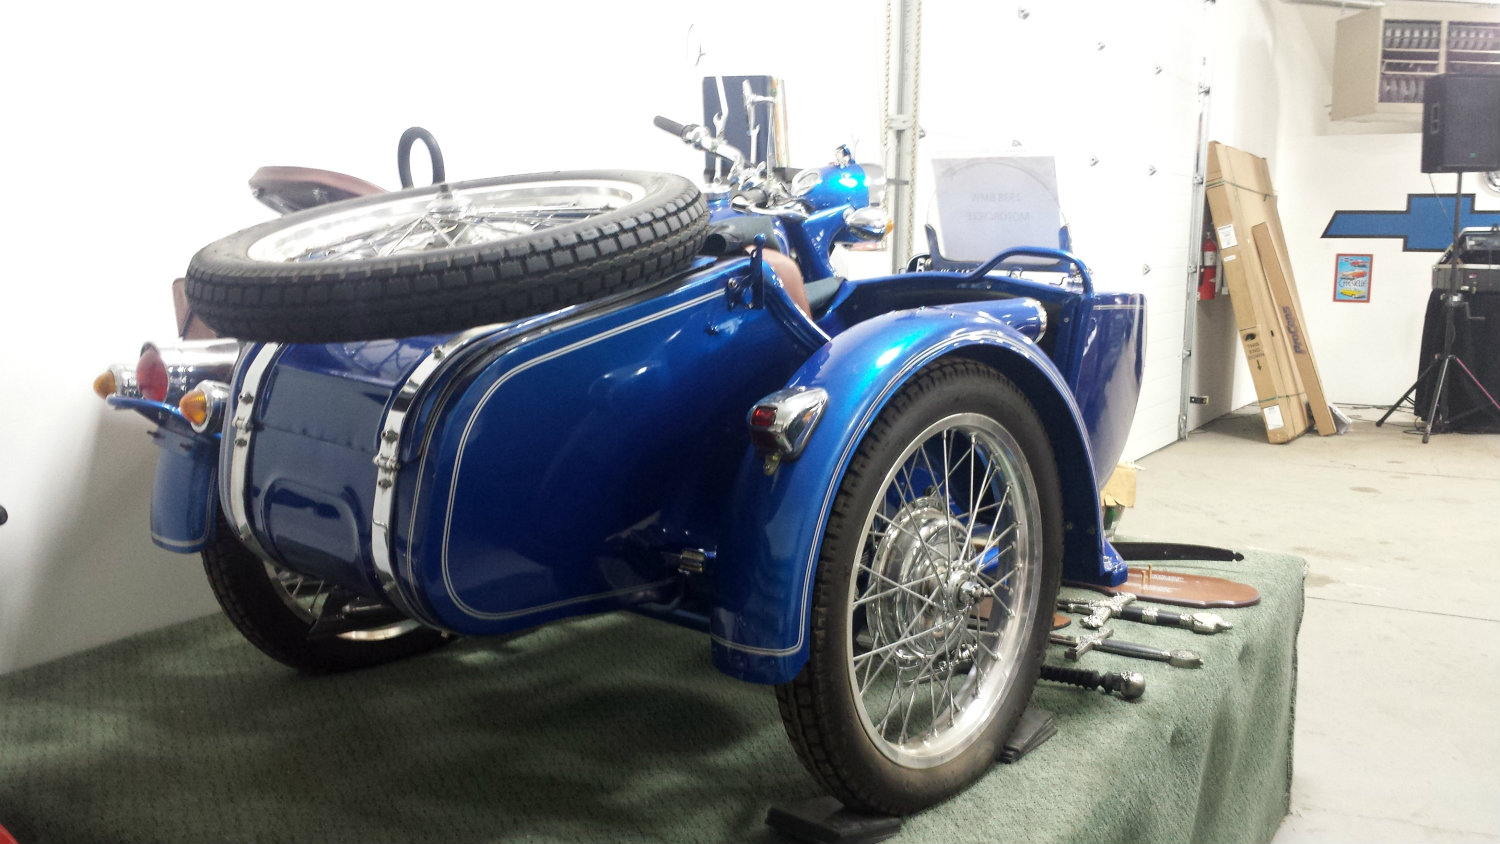 File:1938 BMW motorcycle with side car (15373173746) jpg - Wikimedia